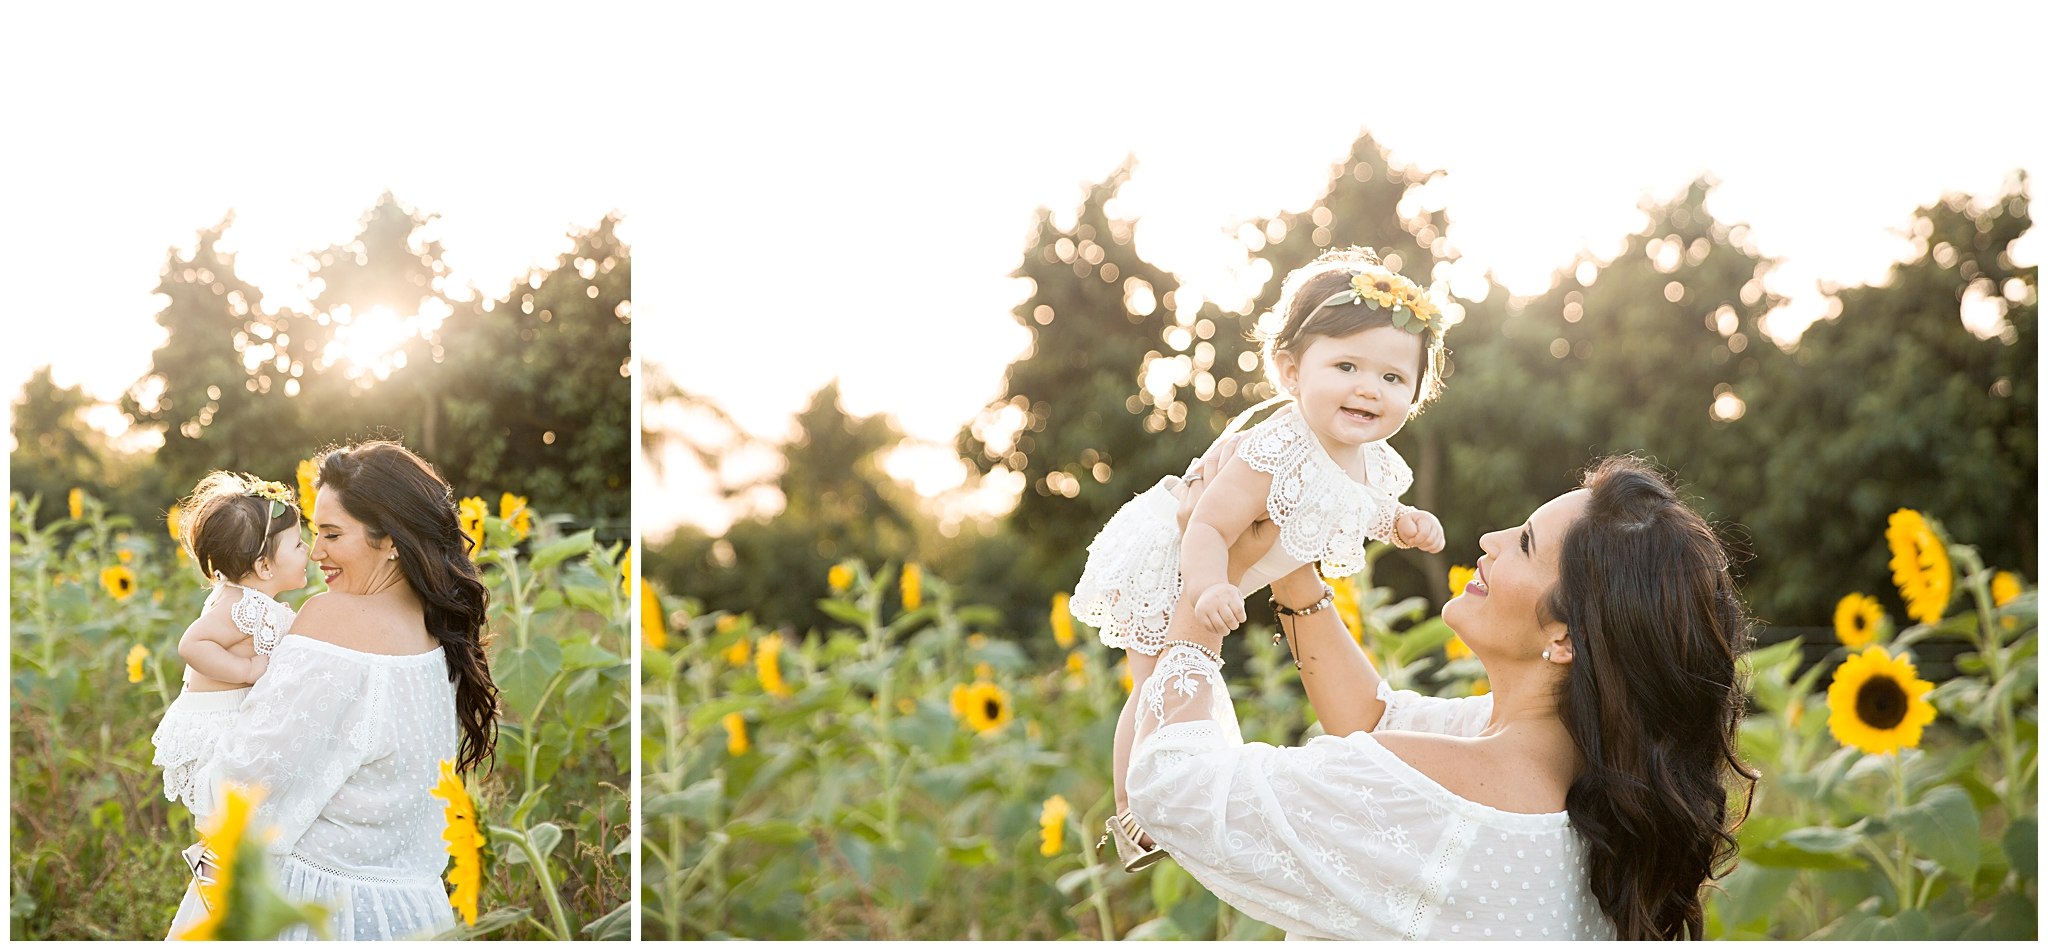 Mother with 9 month old daughter smiling and giving eskimo kisses at a sunflower field during their motherhood session with Ready Freddie Studios in Miami FL